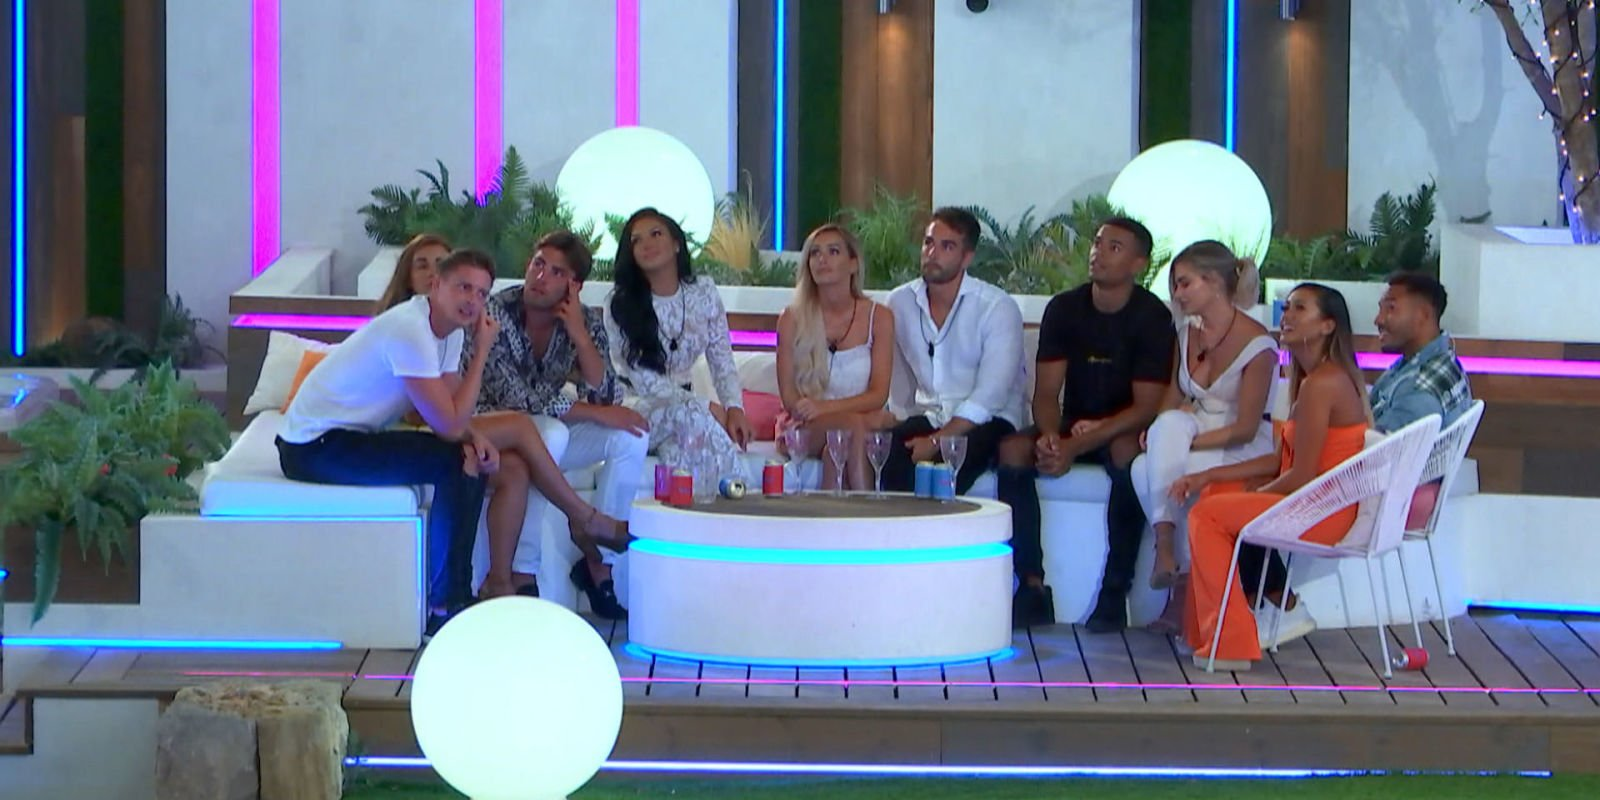 Love Island viewers get their wish as Alex and Alexandra are dumped from the villa